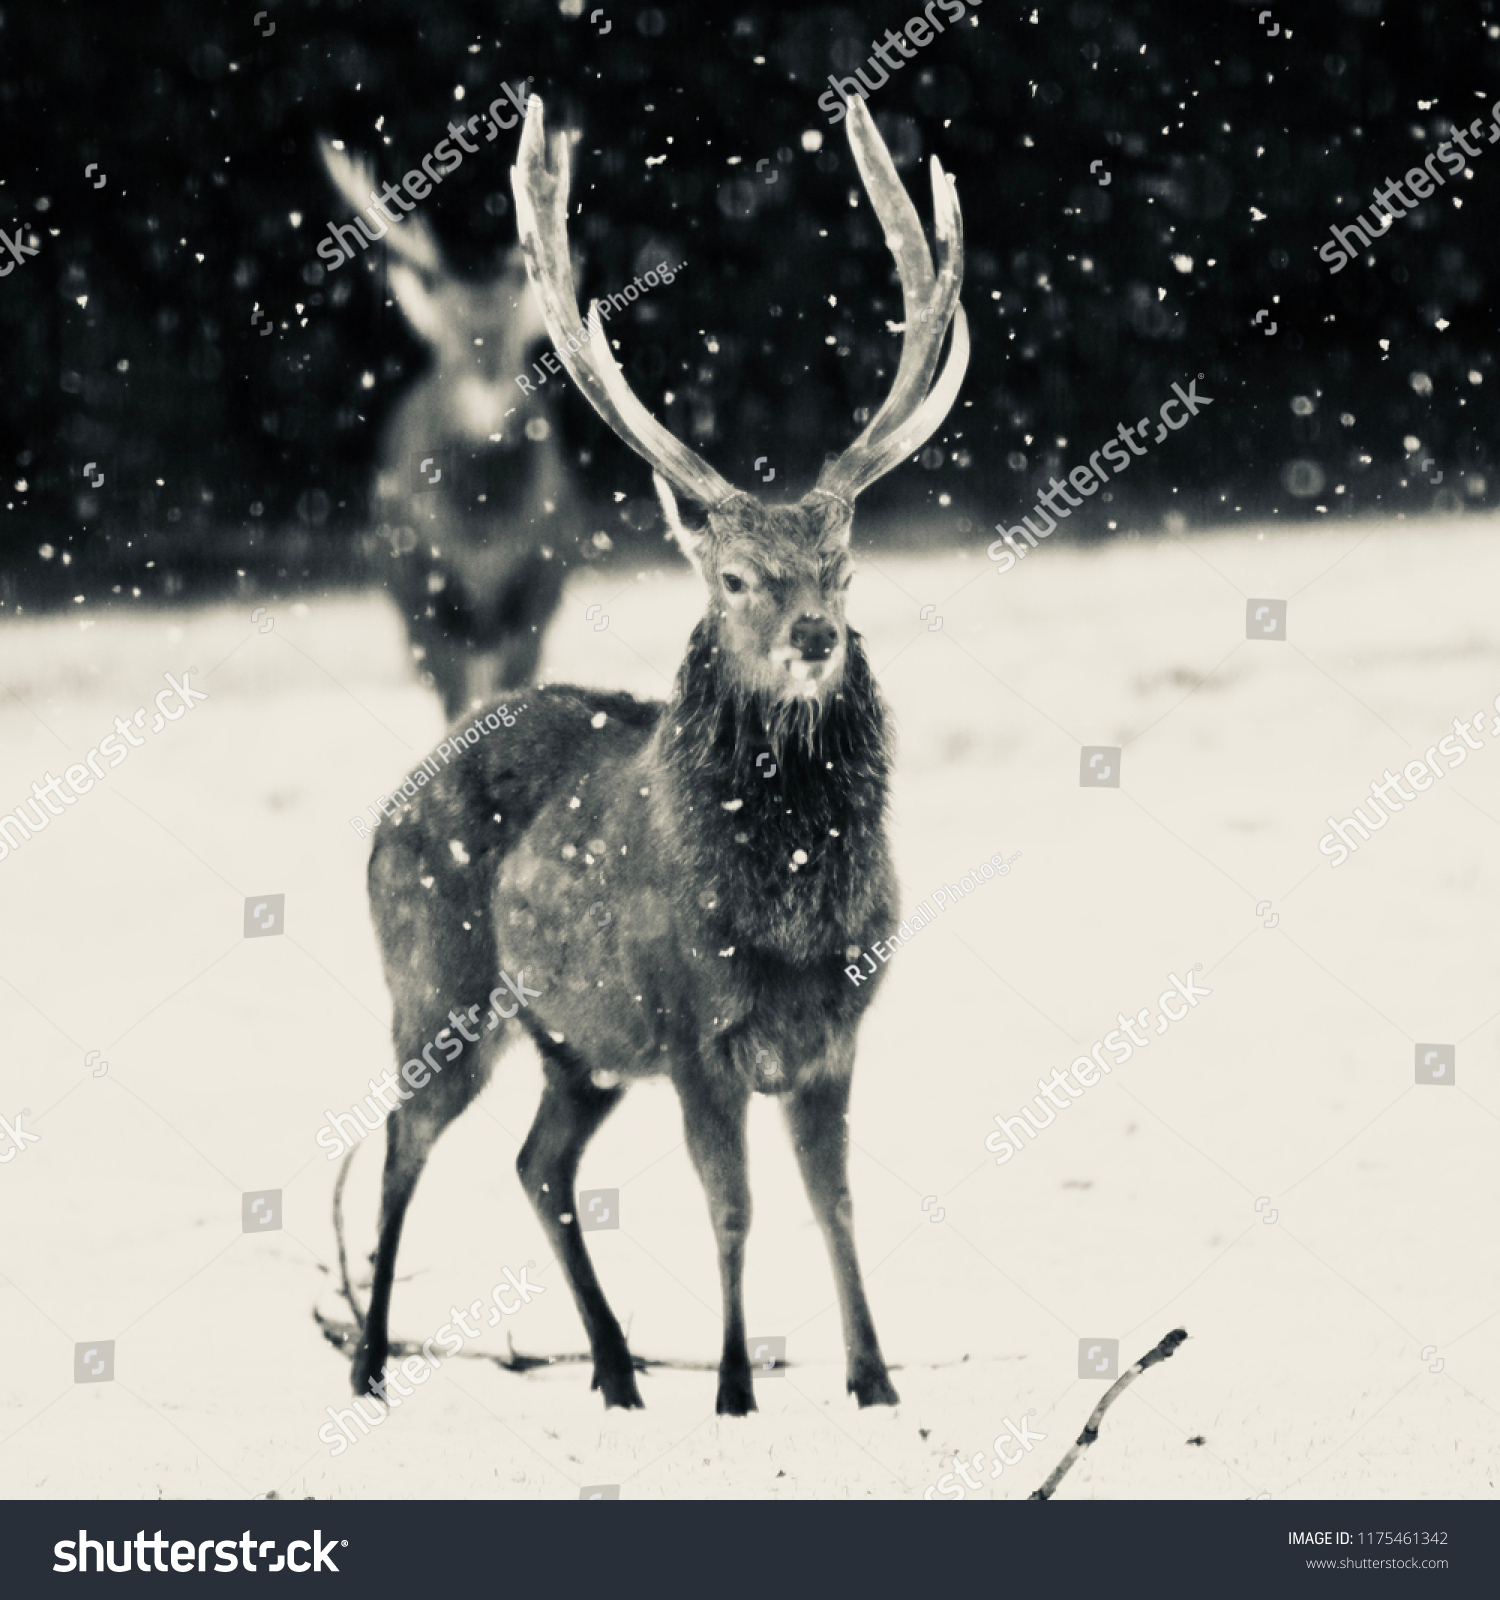 Black and white portrait of male and female deer in snow